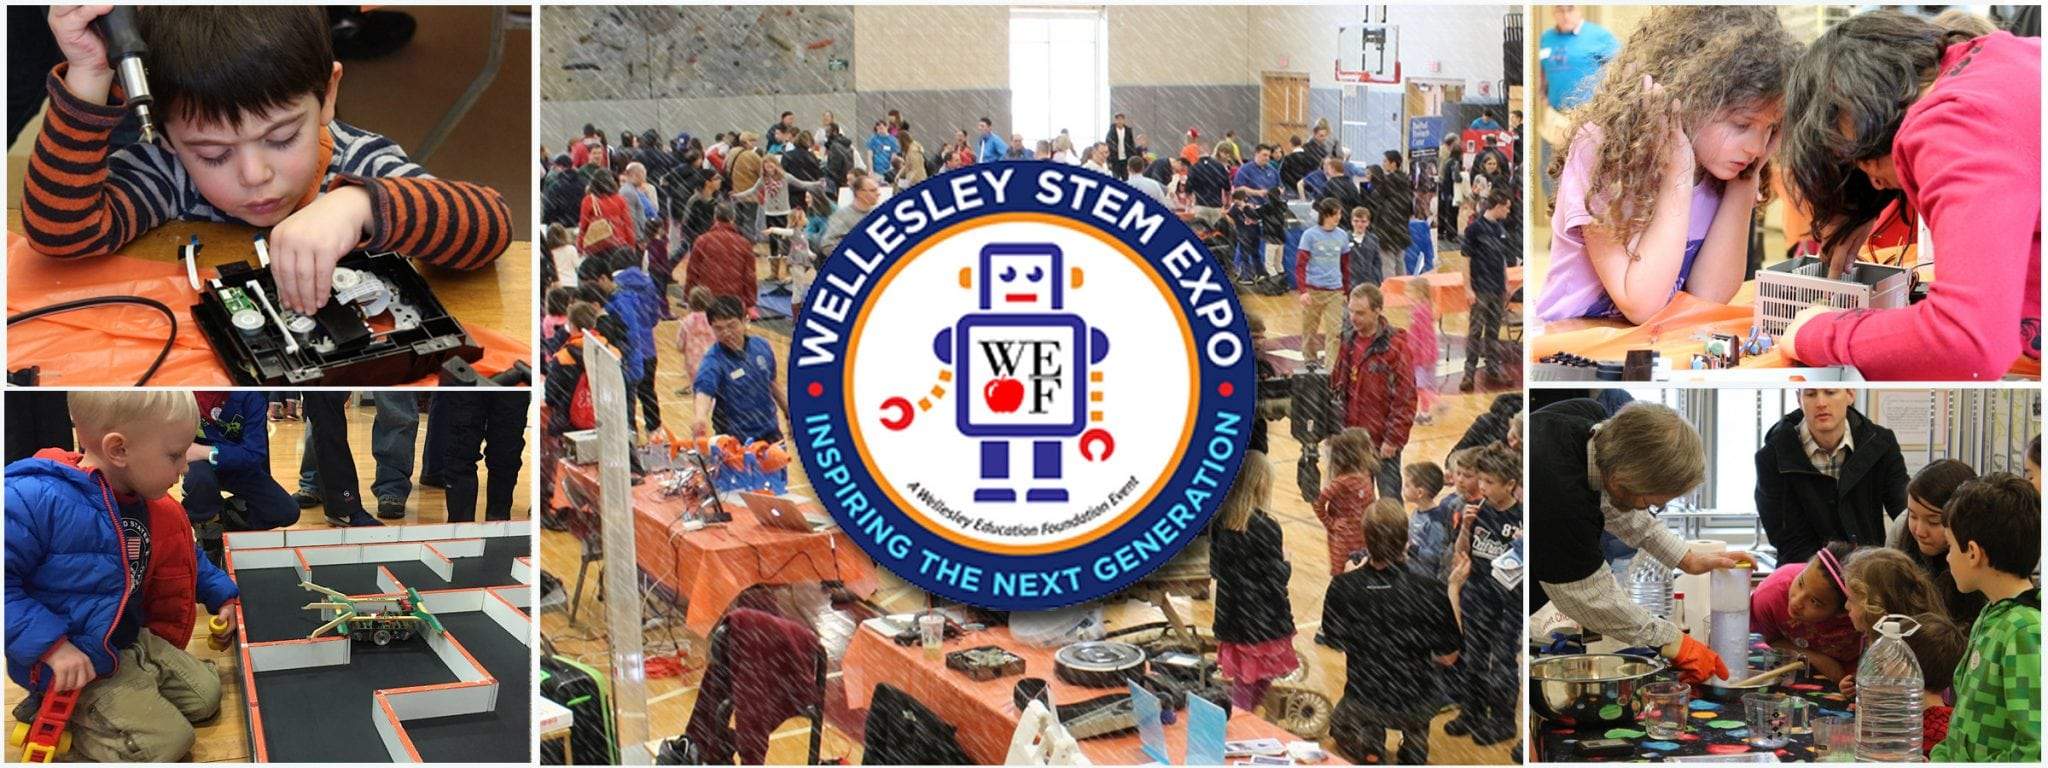 Wellesley Education Foundation, STEM Expo